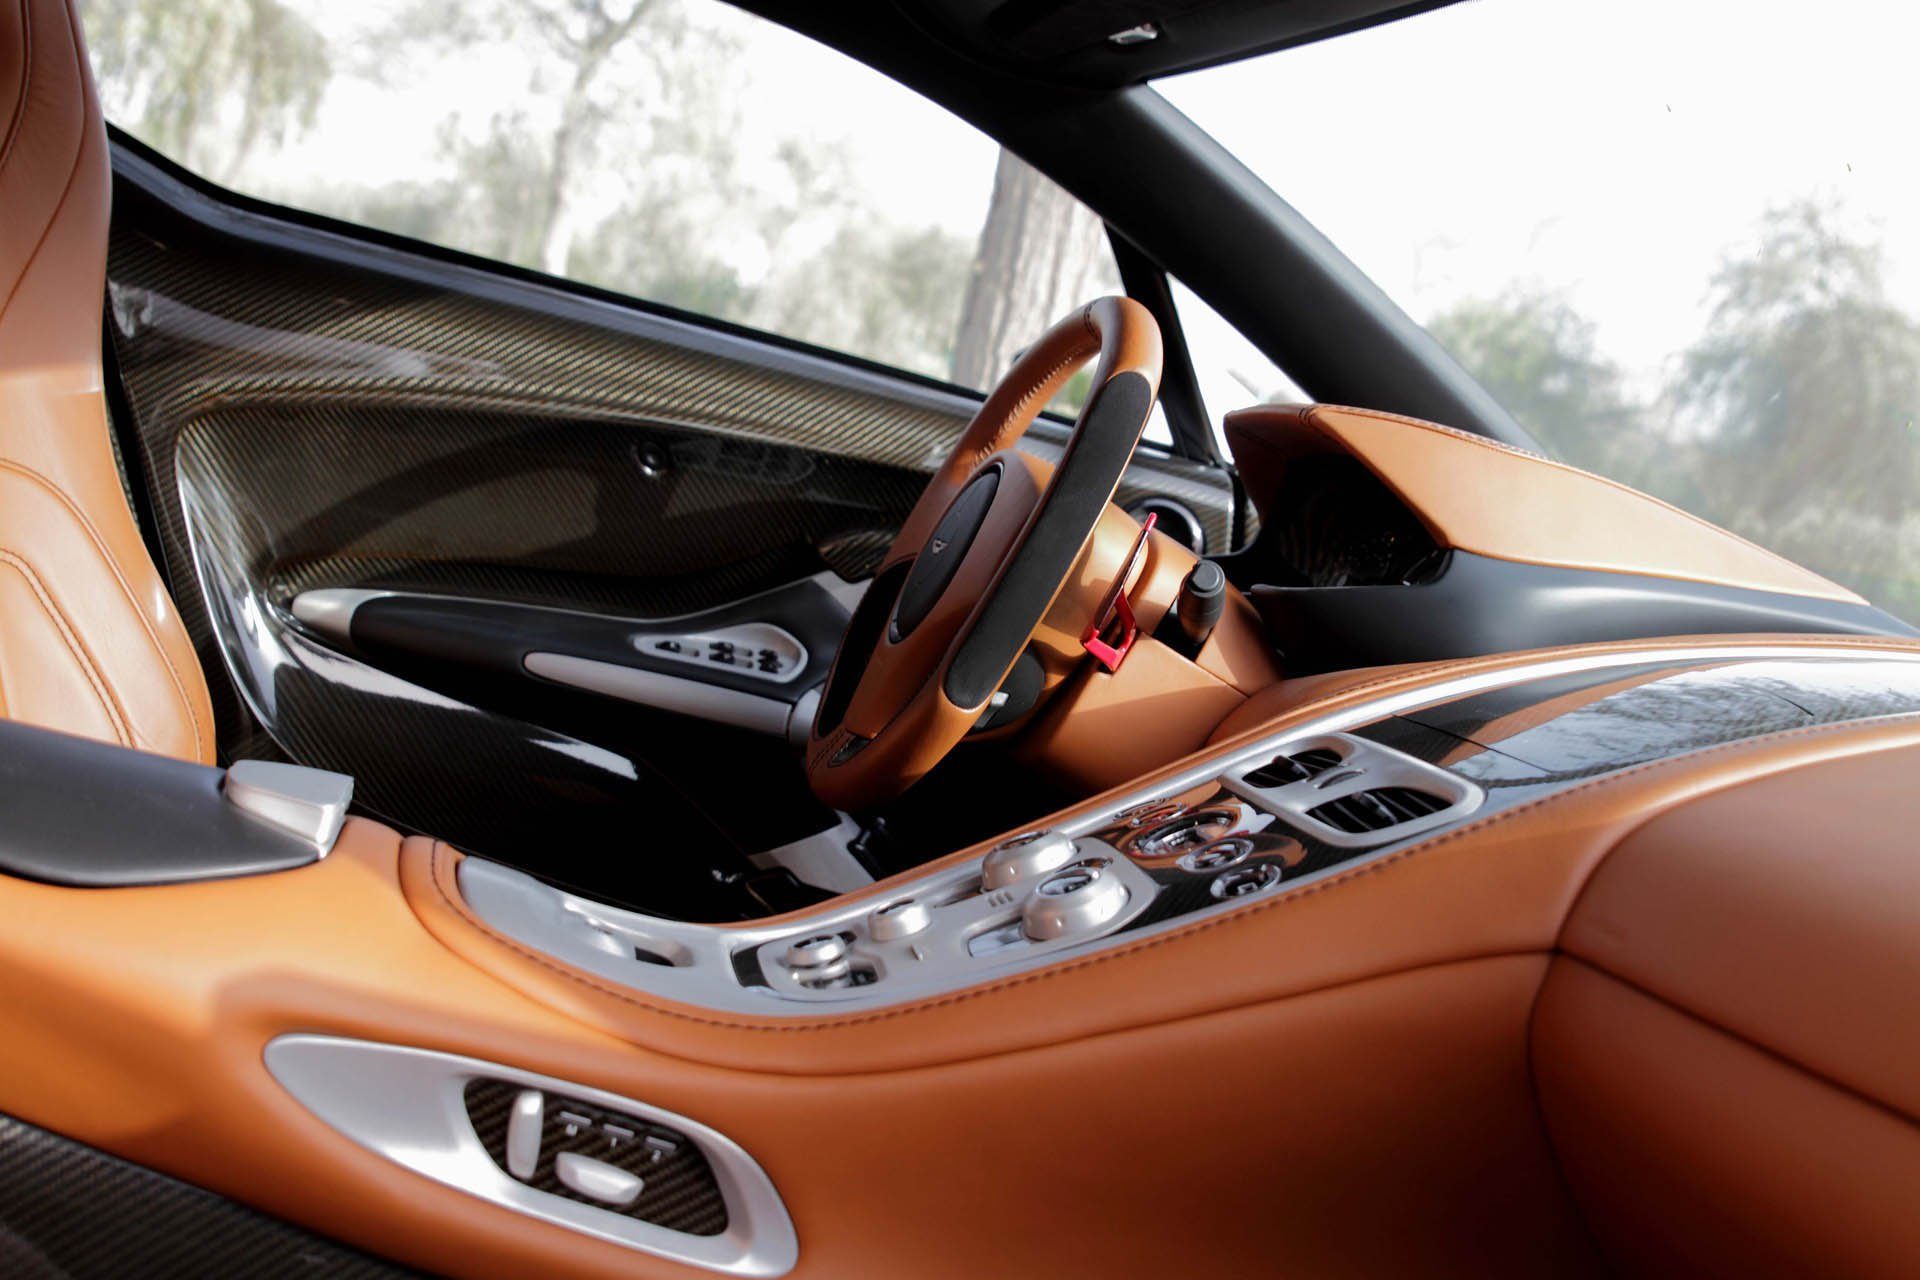 Aston Martin One-77 auction (10)